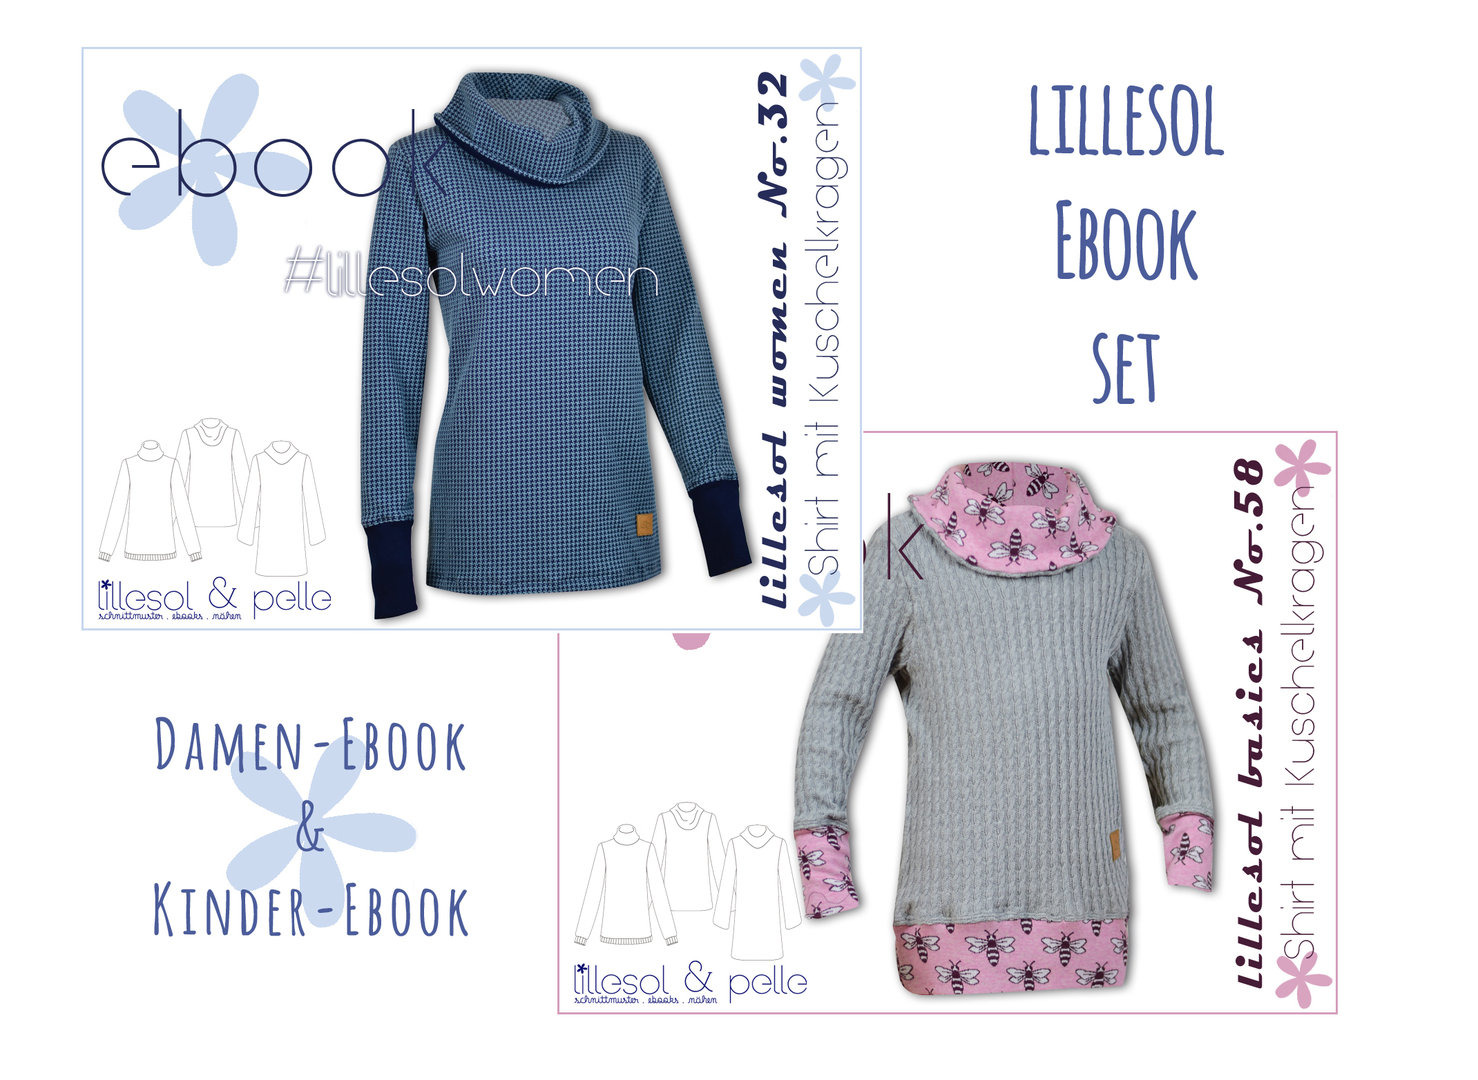 lillesol ebook set basics No.58 und women No.32 *mit Video-Nähanleitung*